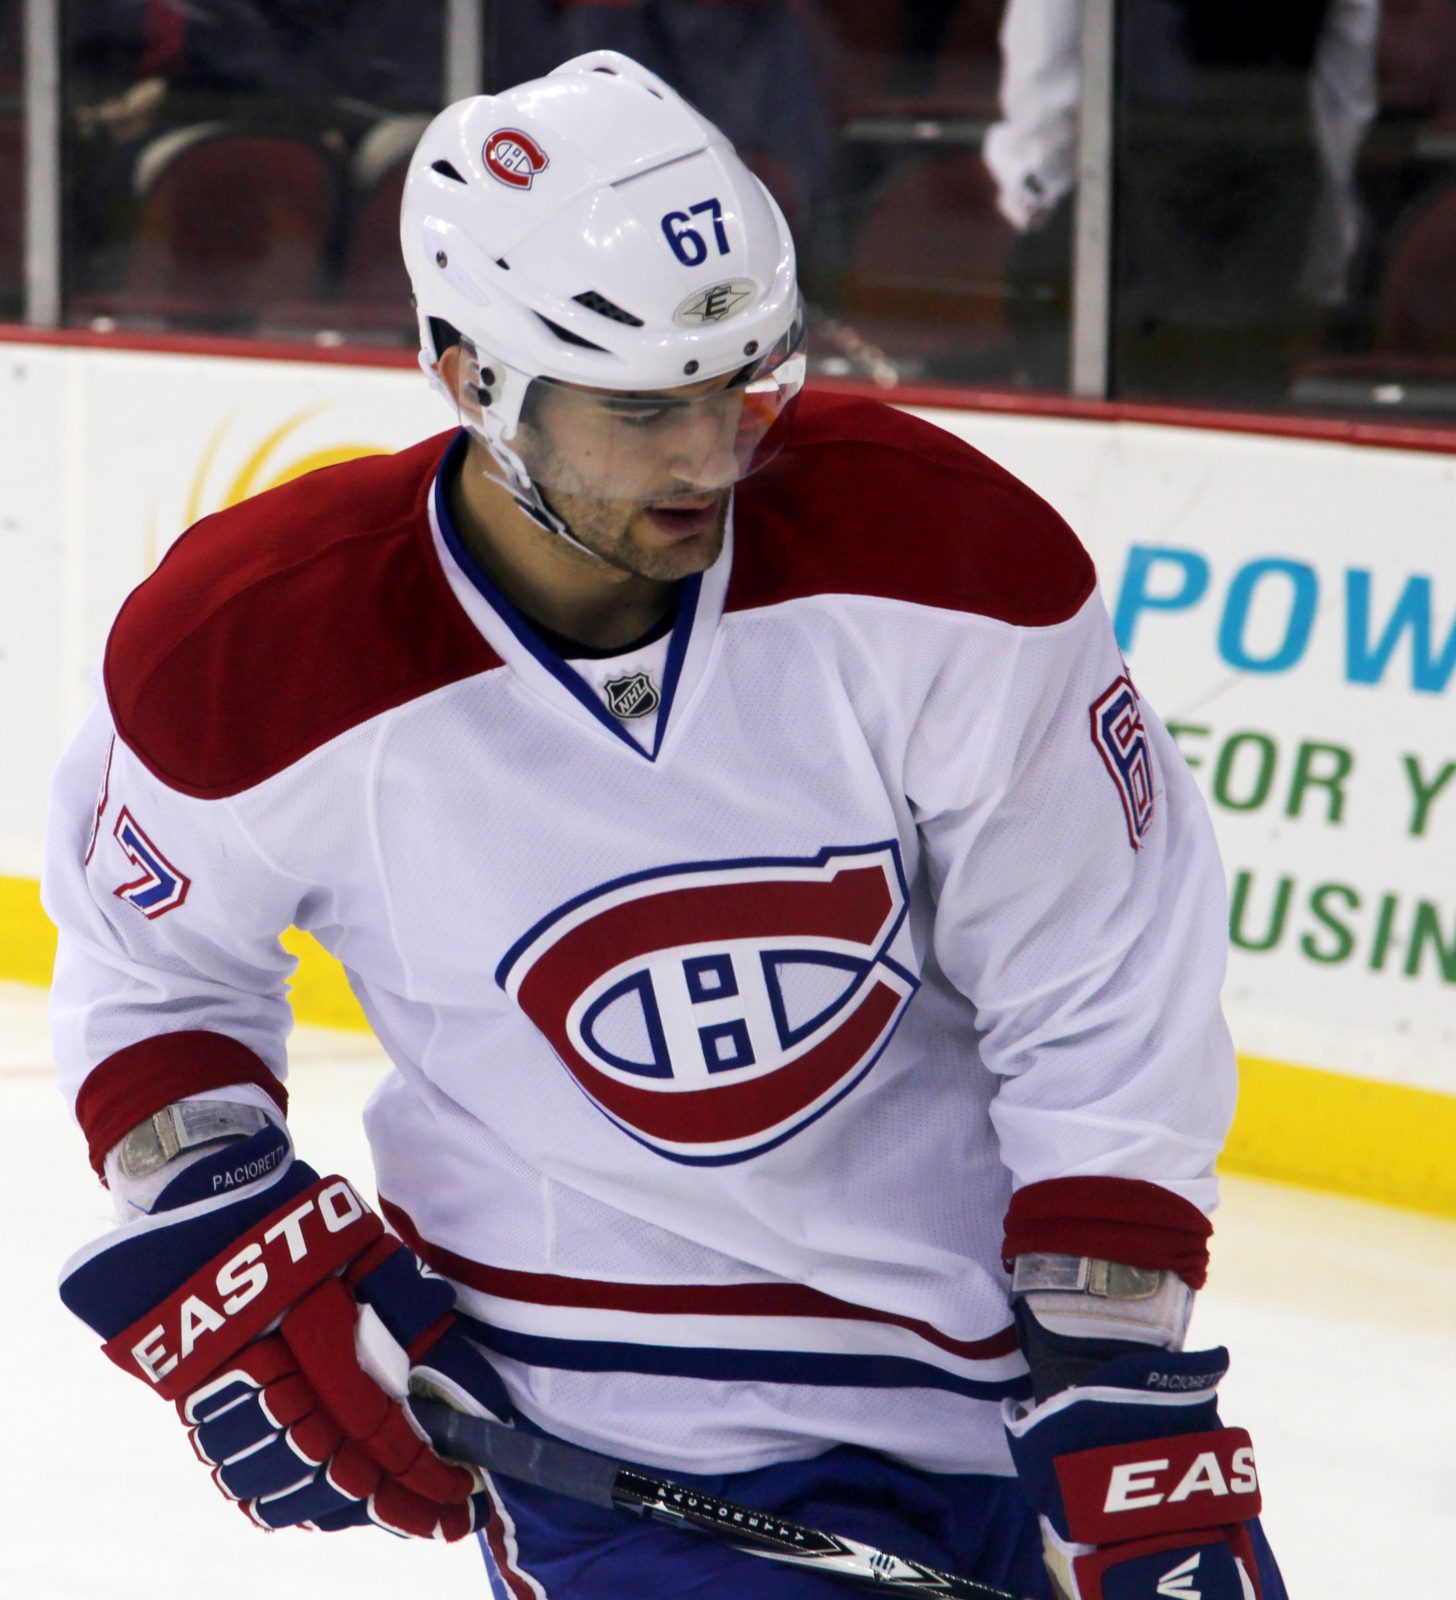 Max Pacioretty of Montreal Canadiens